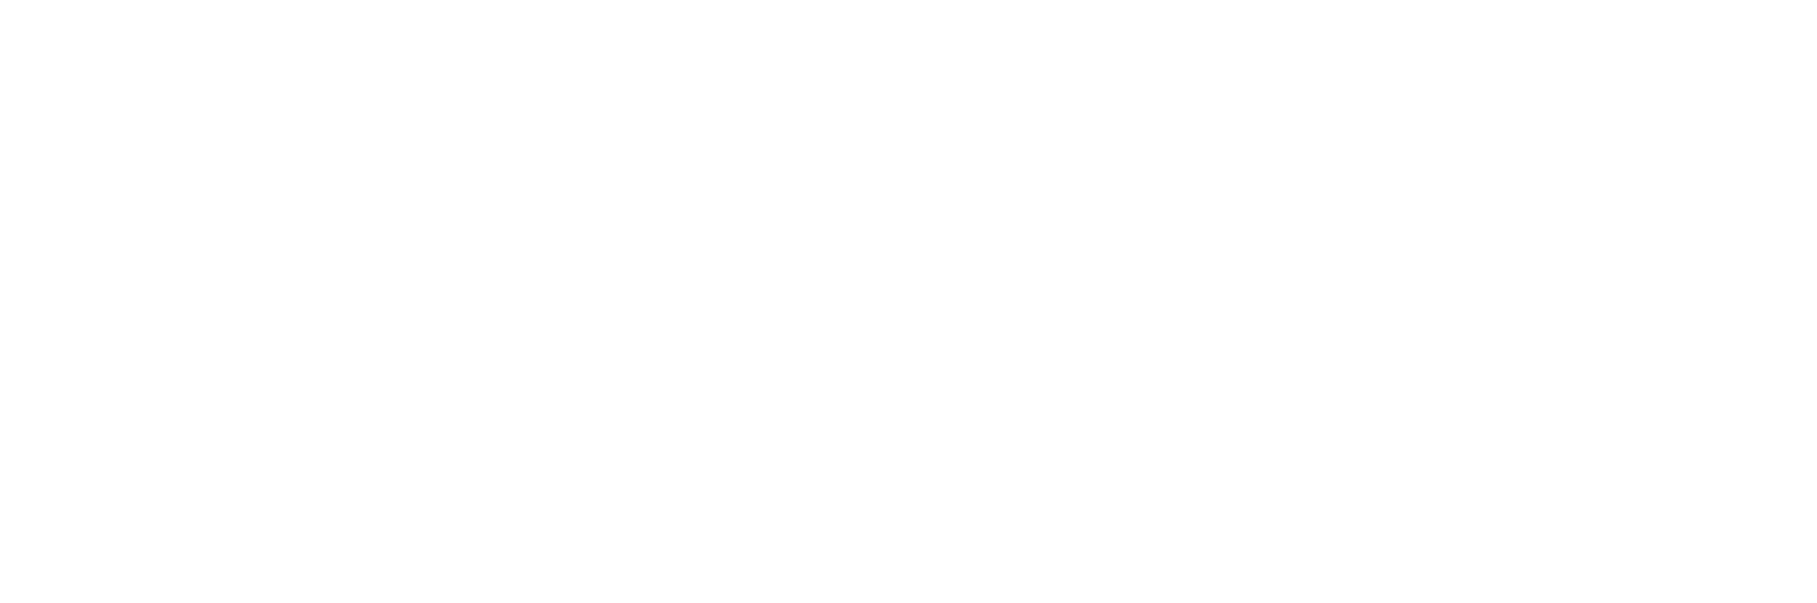 VeniceBeach hair work【ベニスビーチ】公式HP